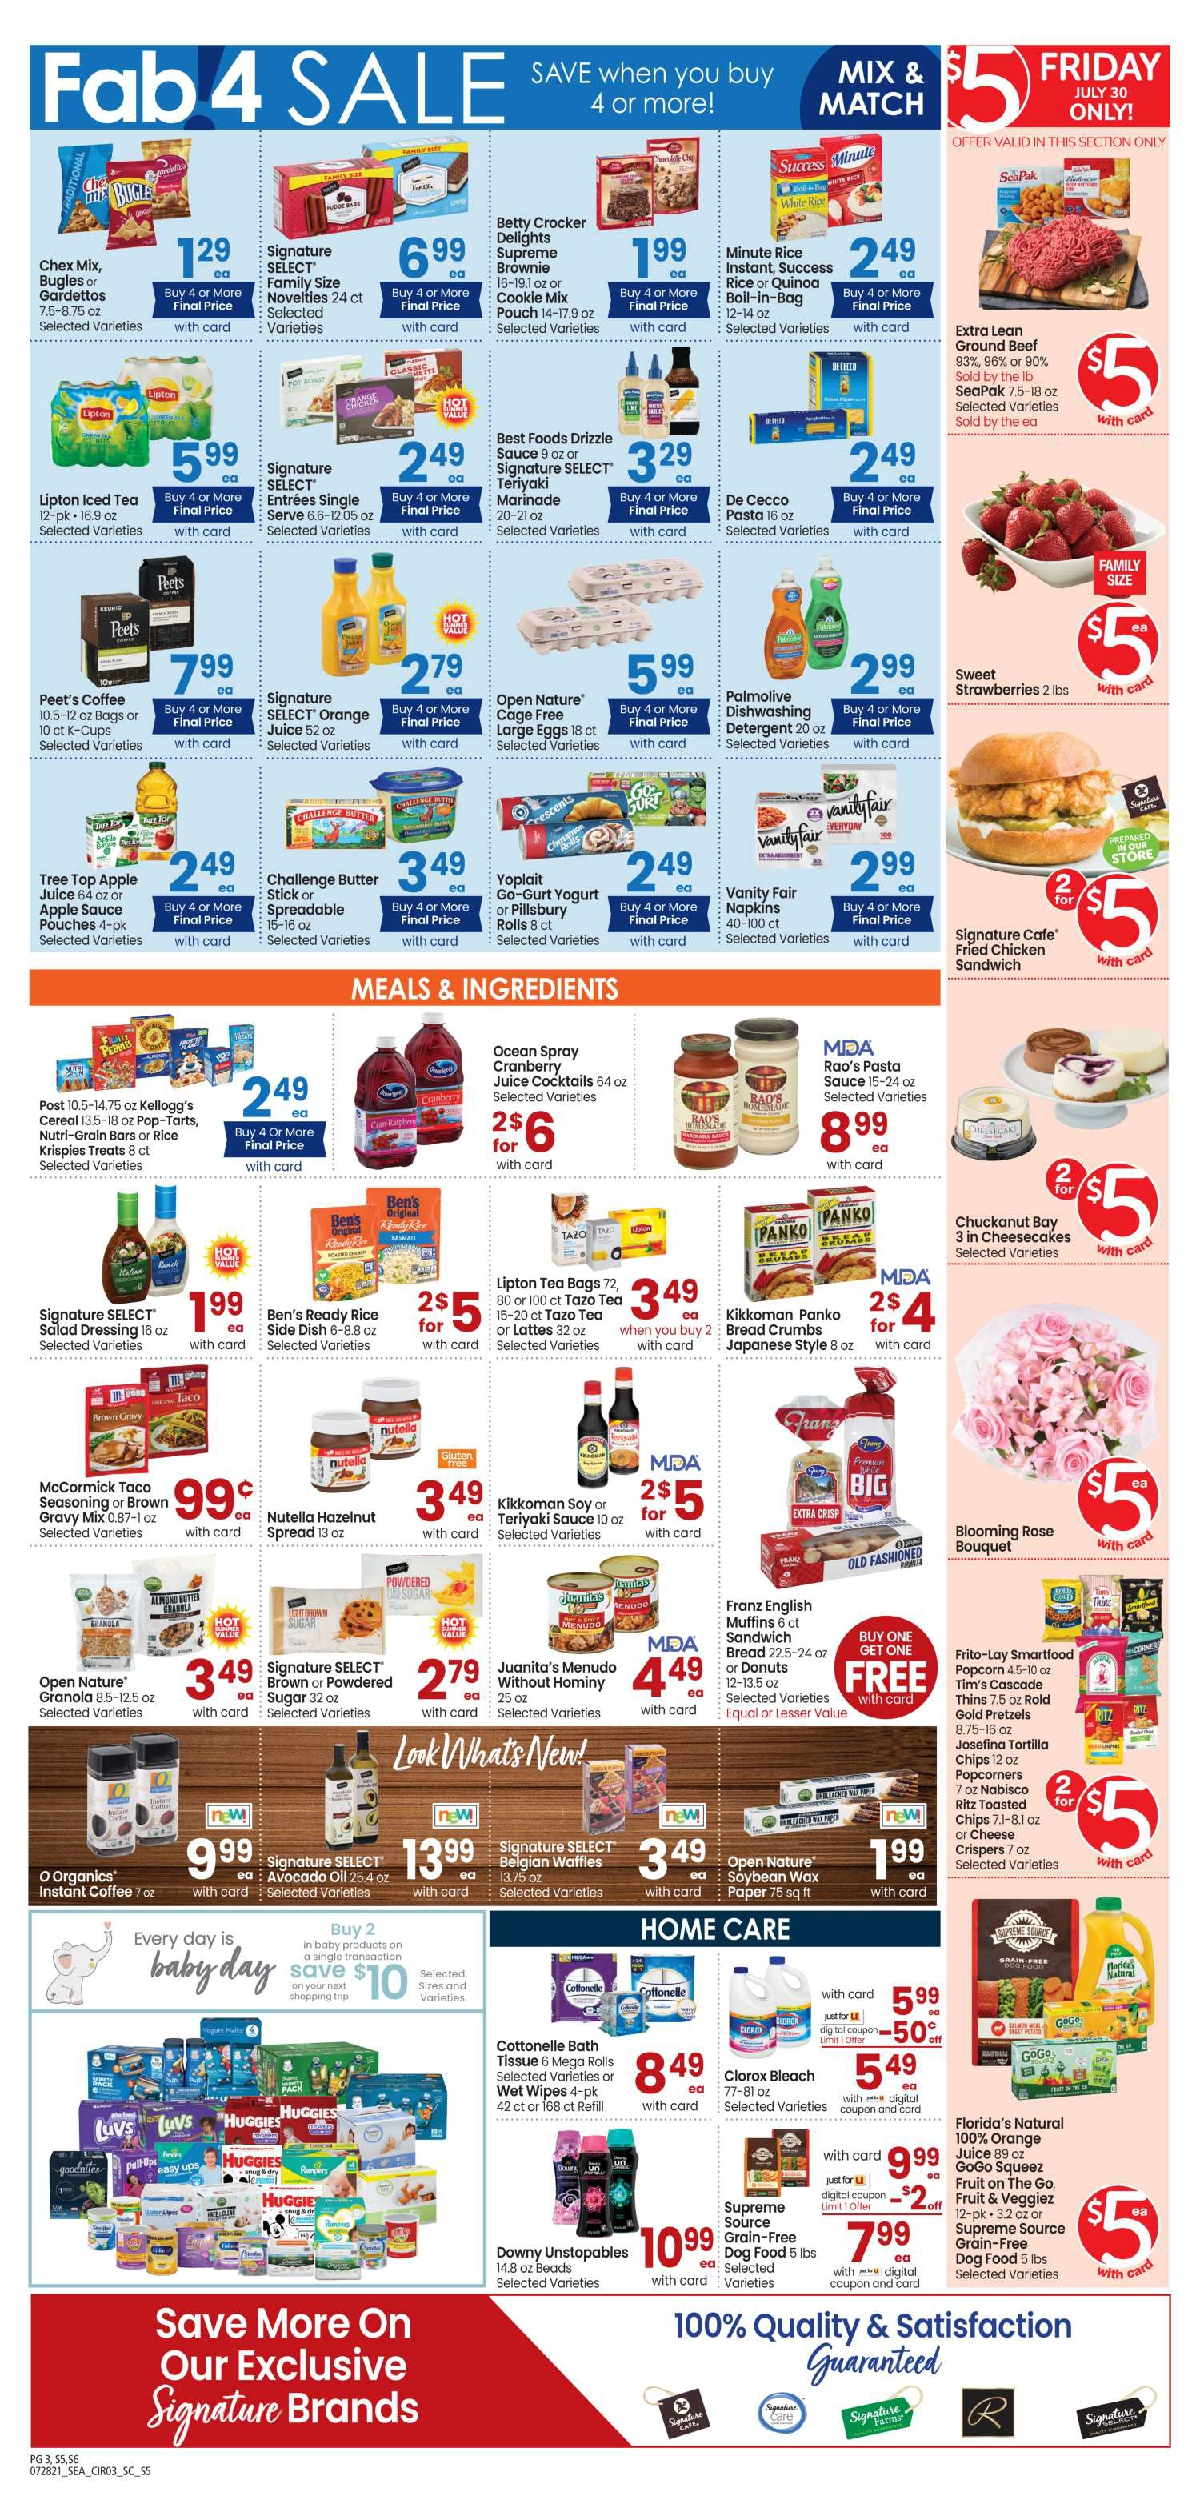 Carrs $5 Friday Ad July 30, 2021 Weekend Sale Preview